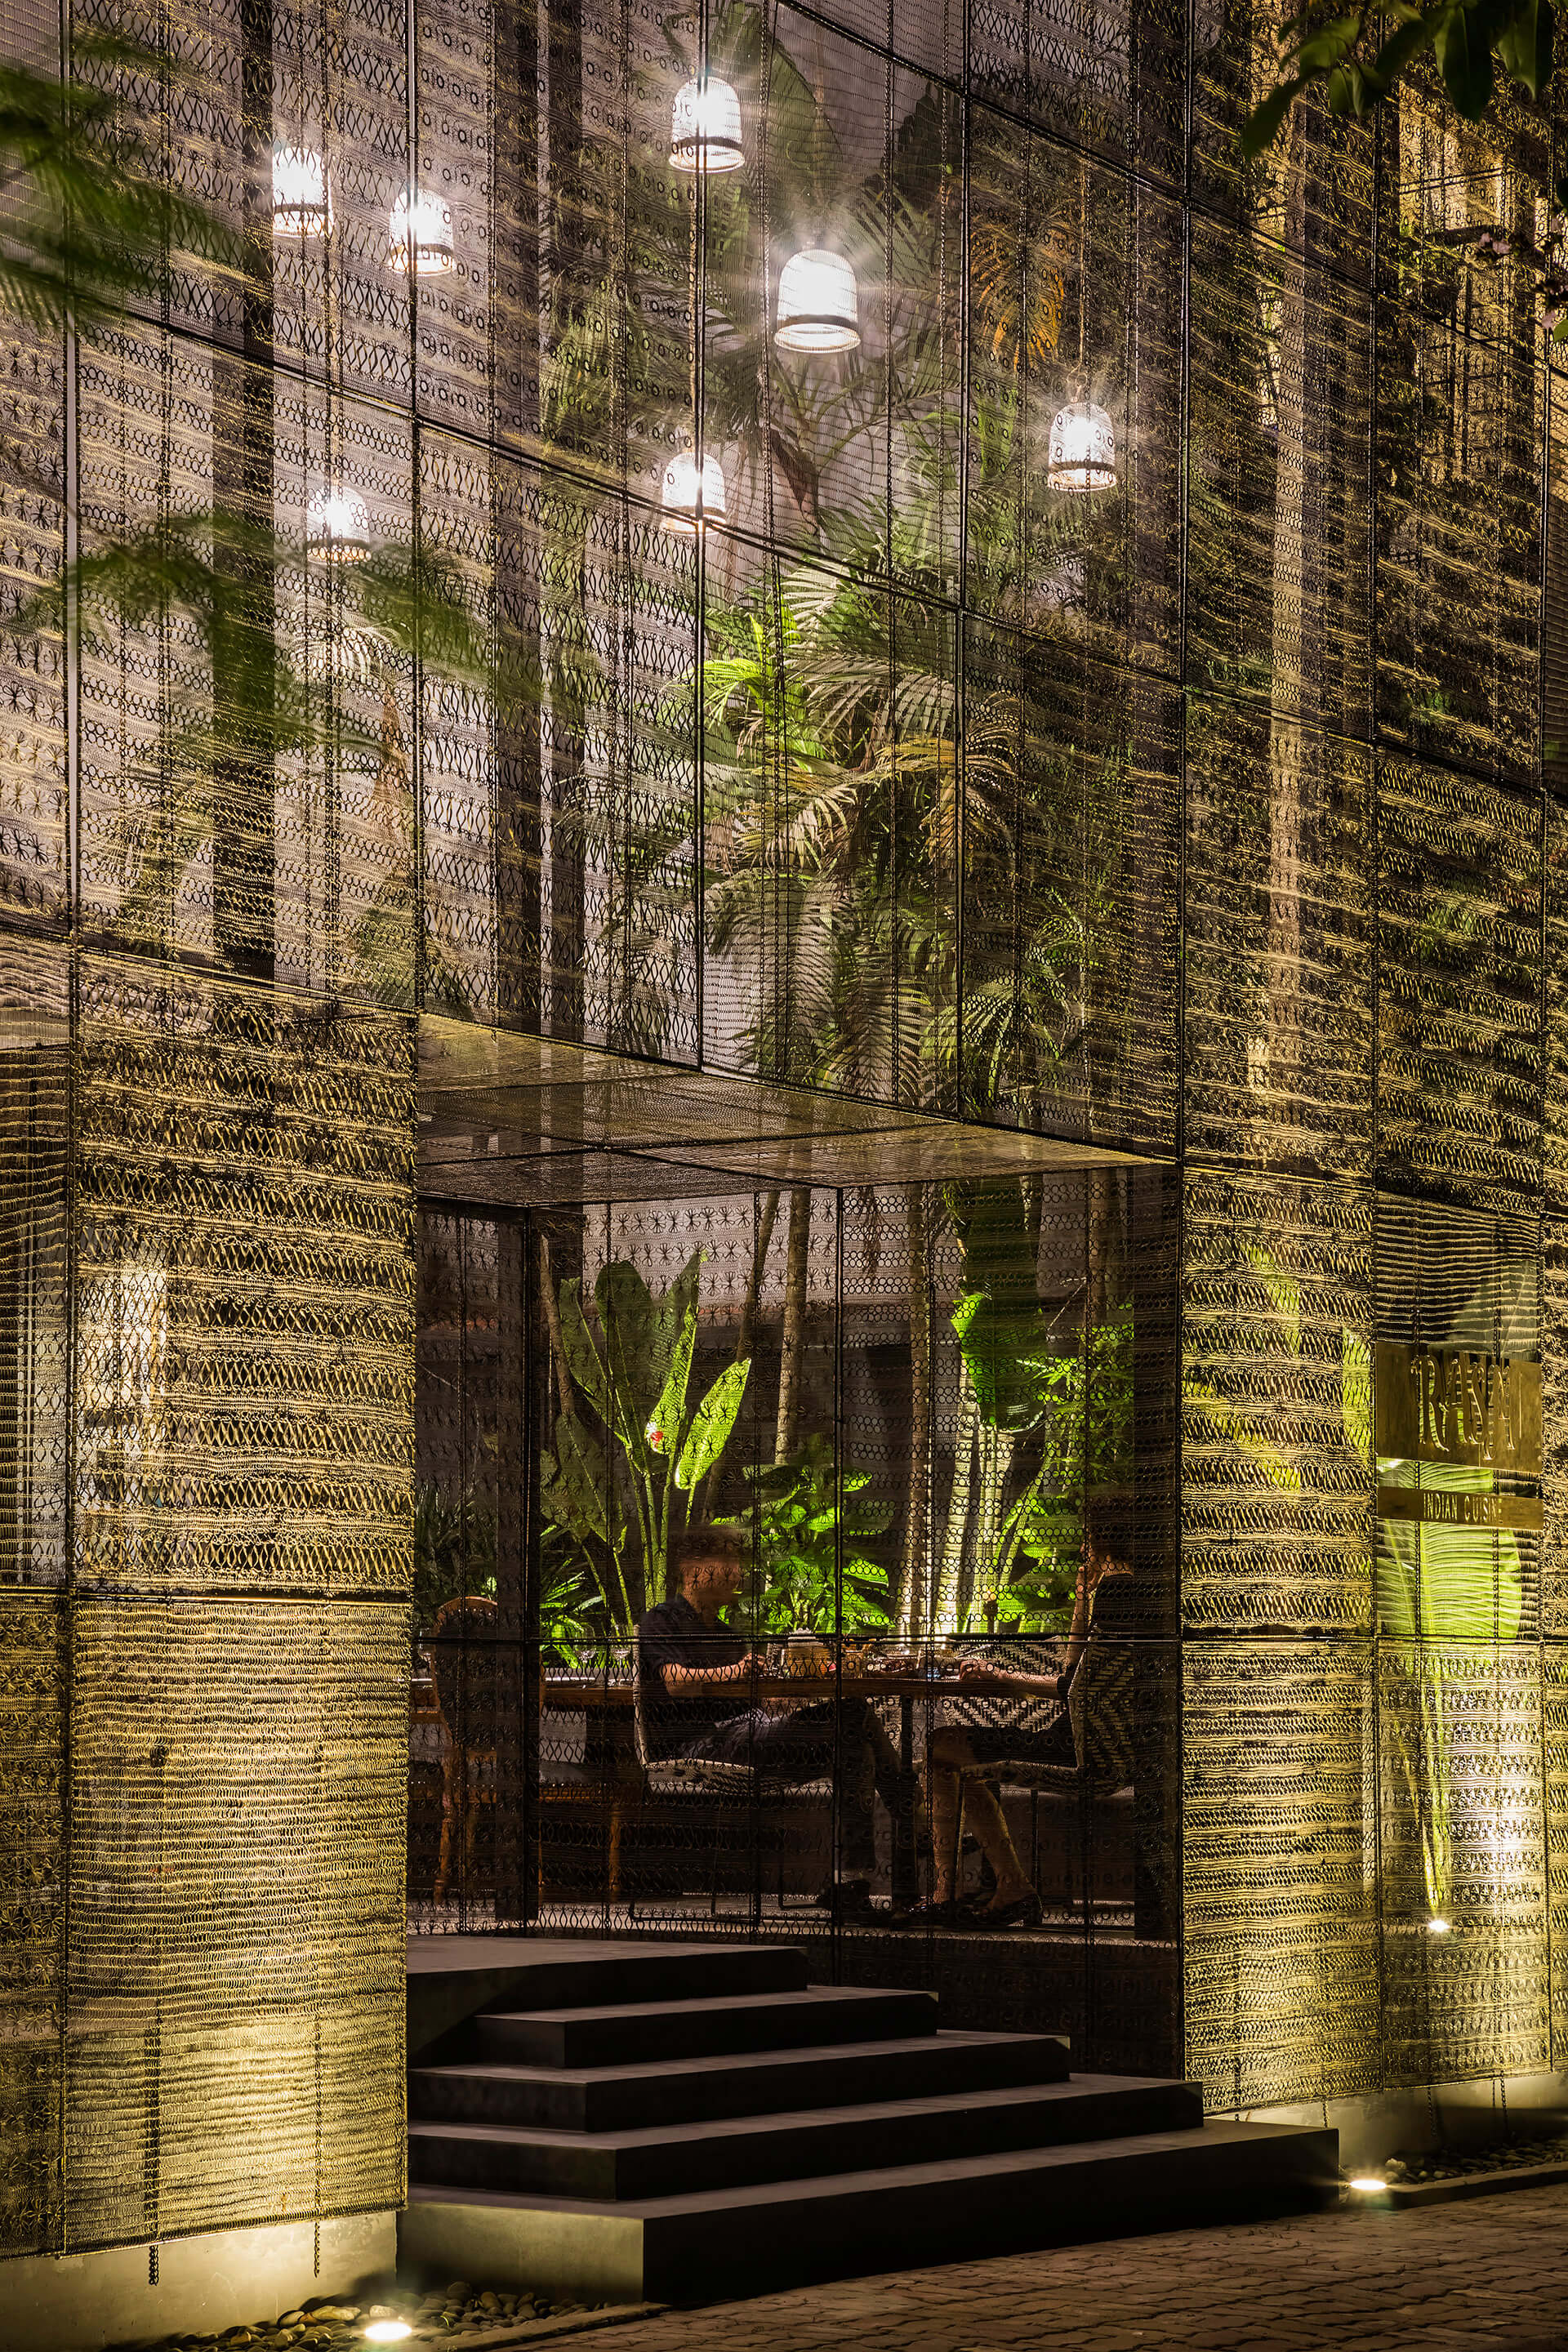 At night the screen becomes an interesting element for the street | RASM restaurant | Studio VDGA | STIRworld